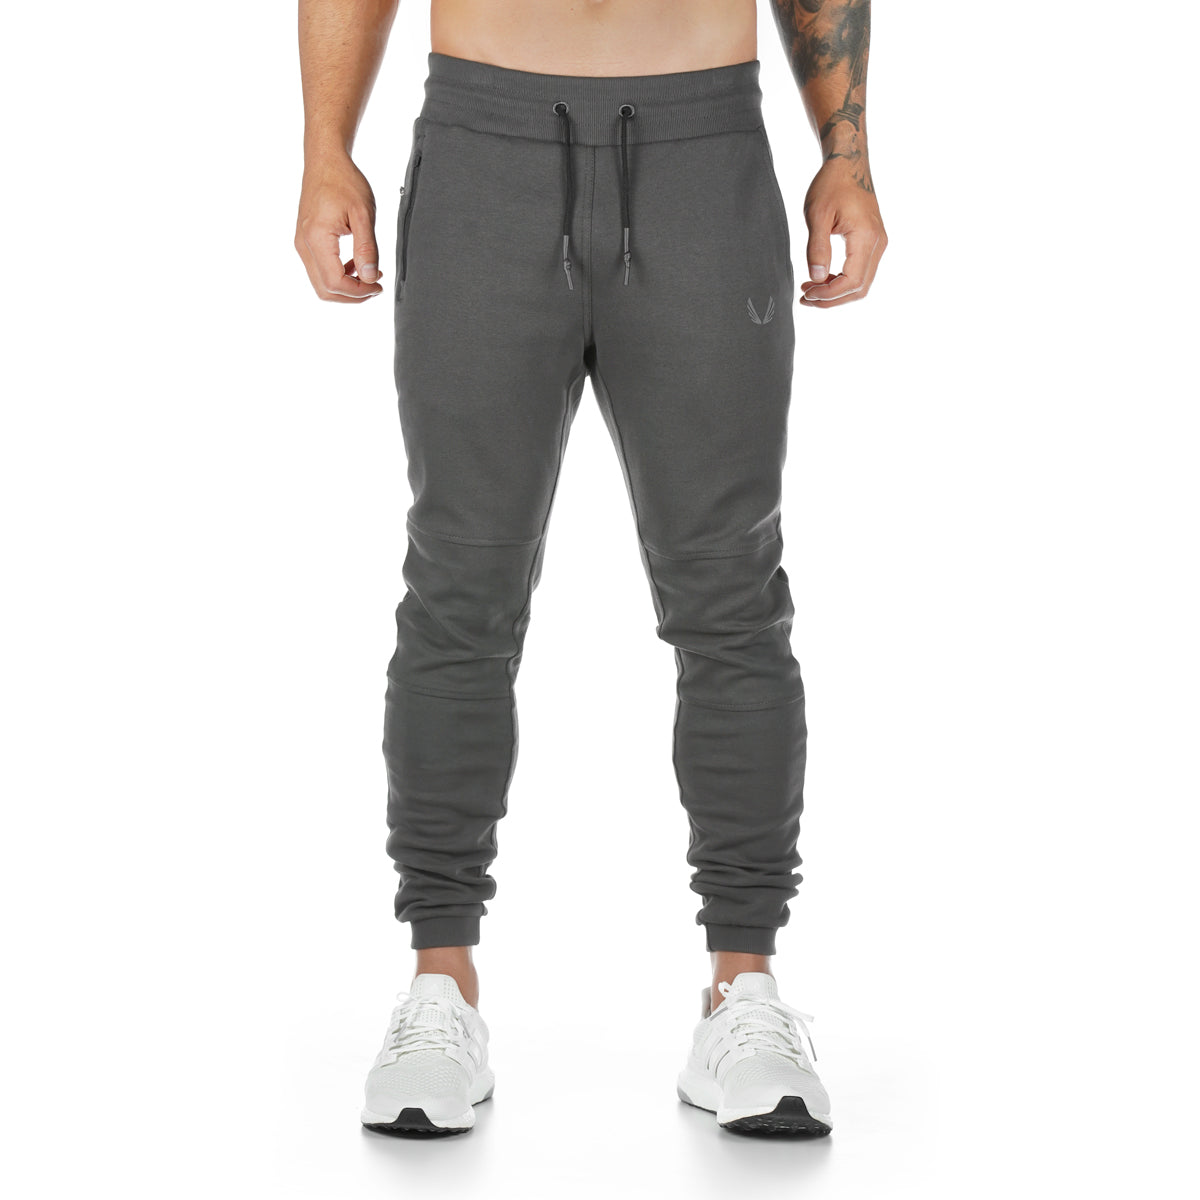 0218. Signature Utility Jogger - Dark Grey